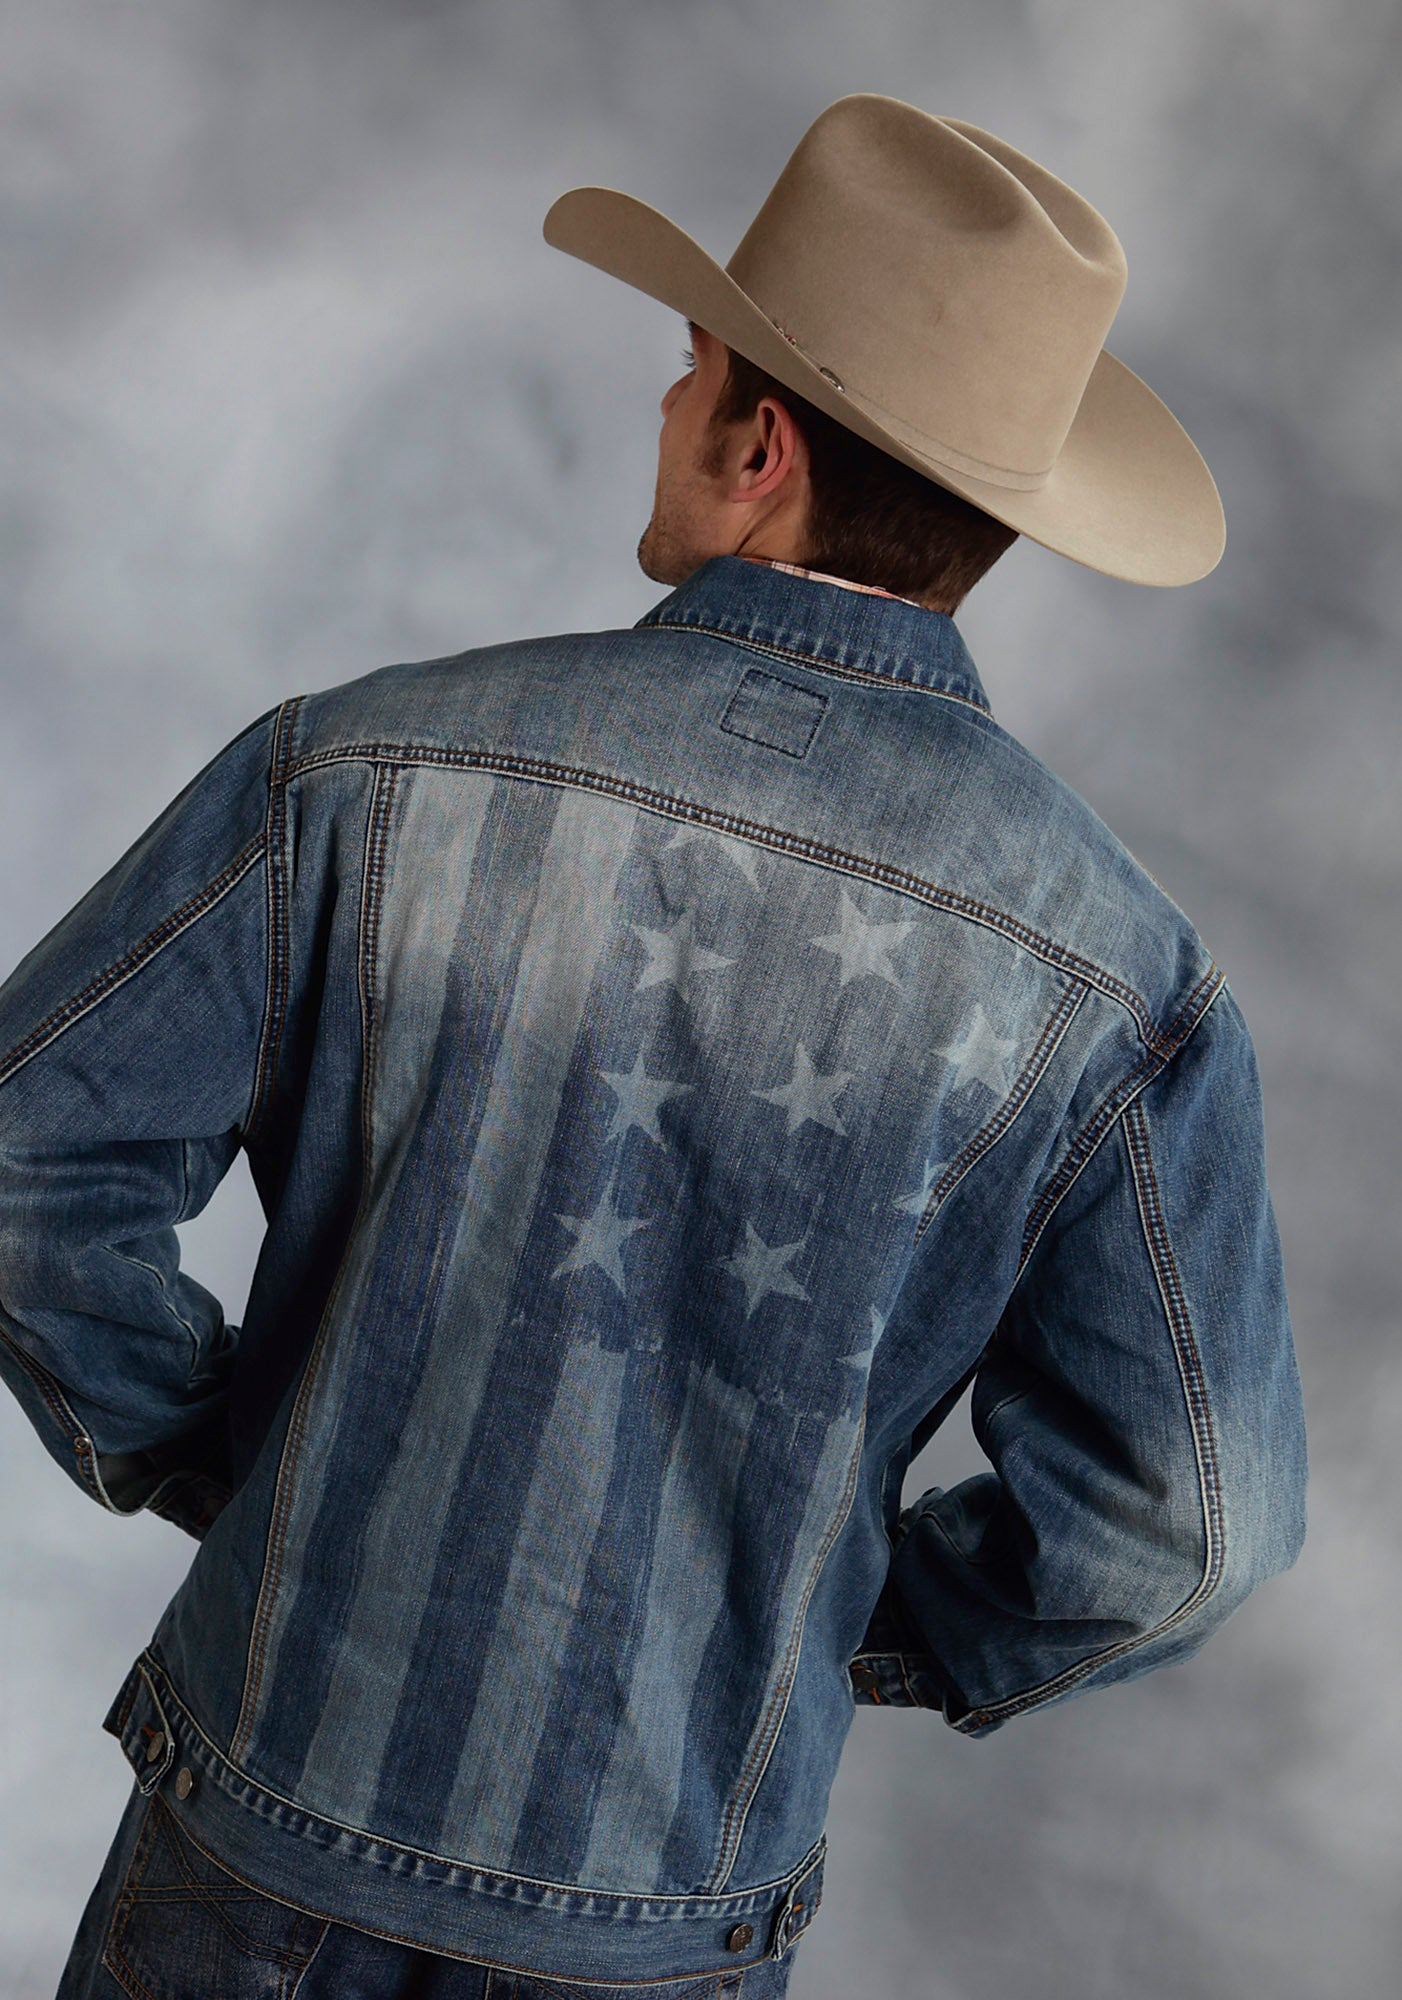 ROPER MENS BLUE JEAN JACKET W/FLAG SCREEN PRINT BACK MEN'S AMERICANA COLLECTION JACKET